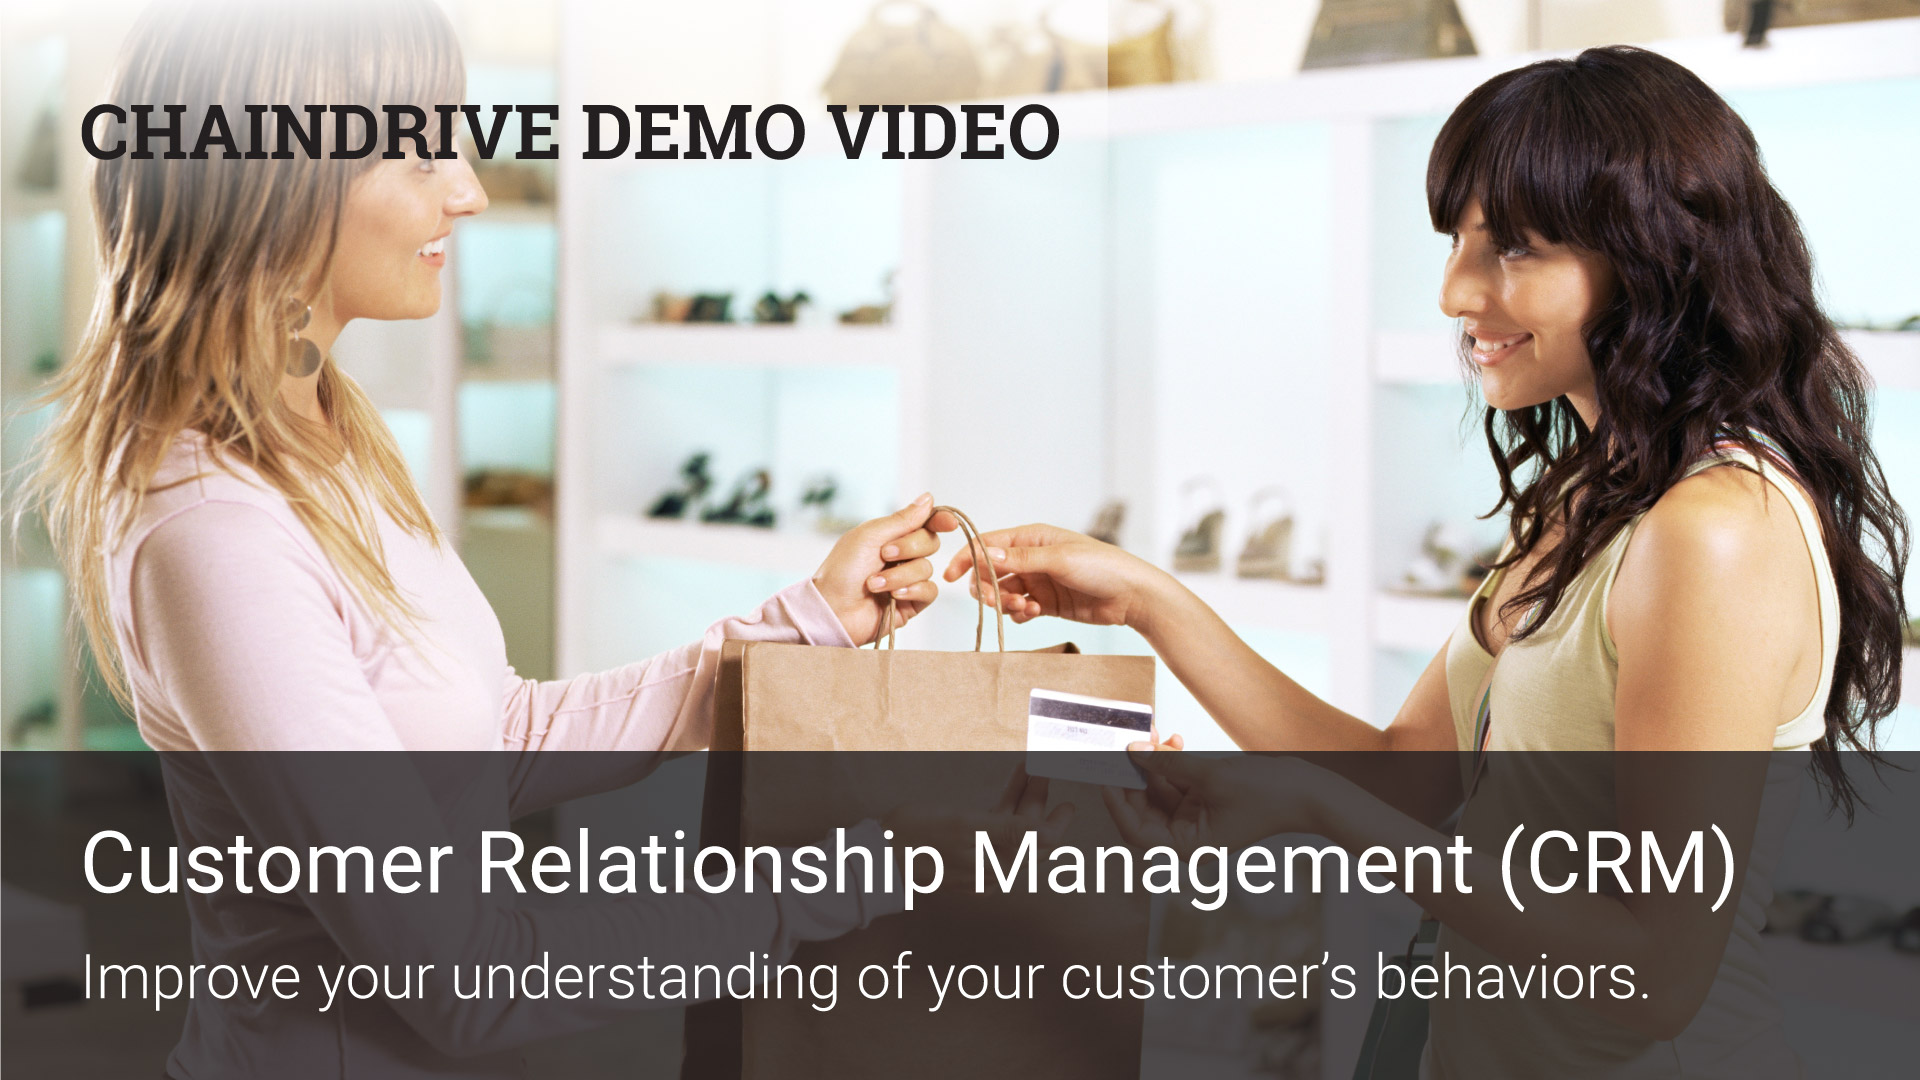 Retail Recources - ChainDrive POS CRM Demo Video